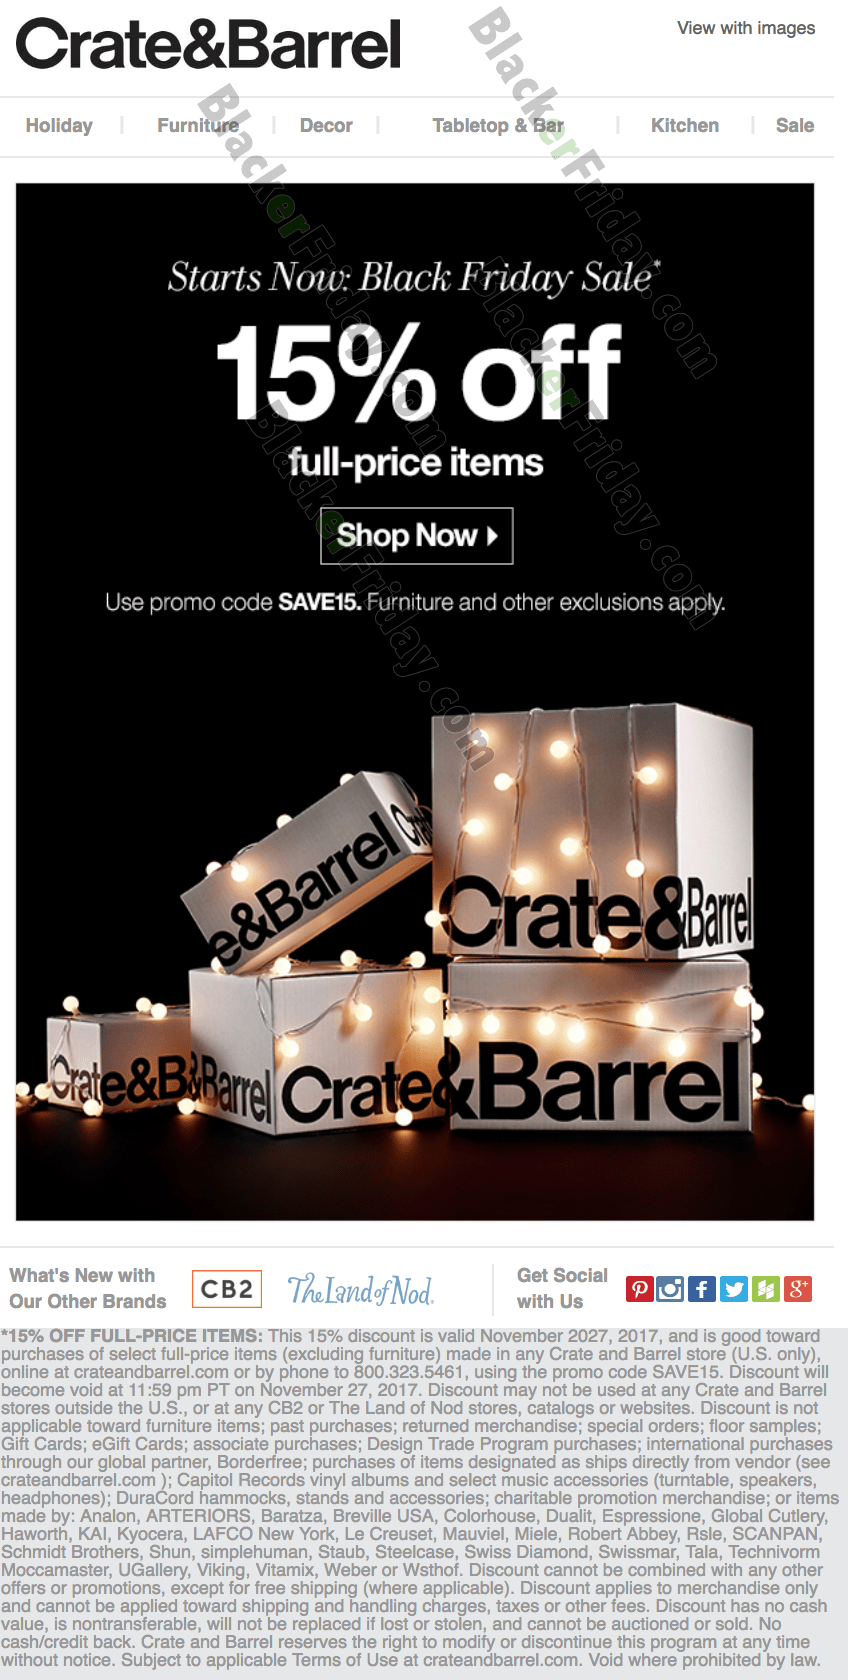 Crate U0026 Barrelu0027s 2017 Holiday Collection Is Already On Their Site. Here Are  A Few Of Our Favorite Picks This Season: